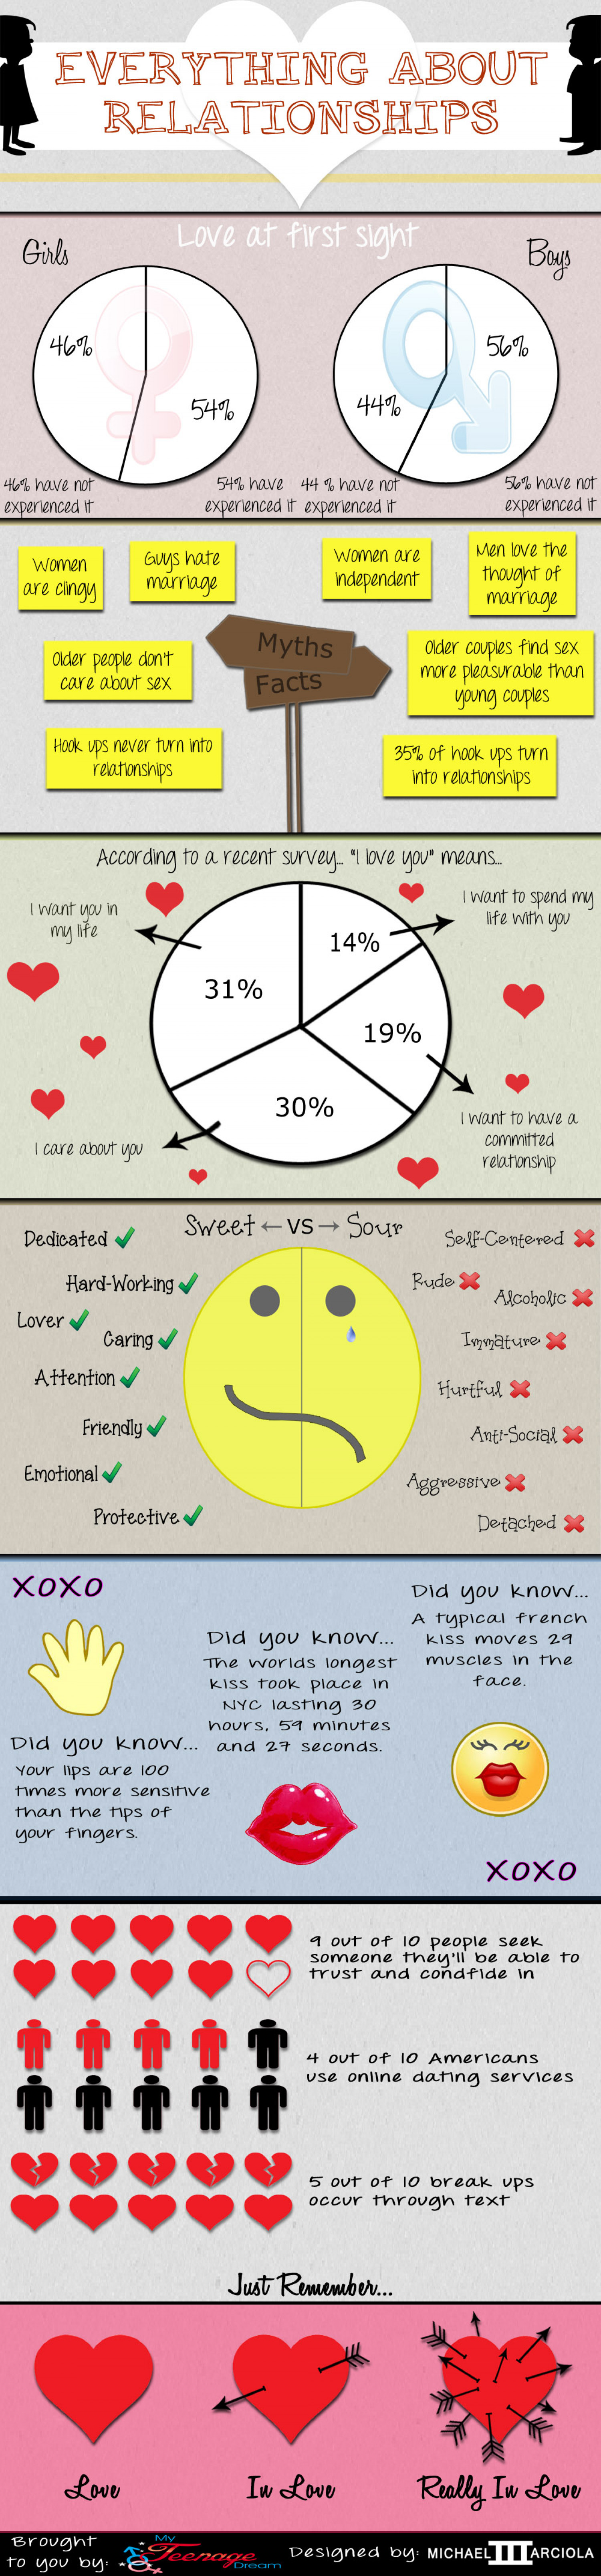 Everything About Relationships Infographic